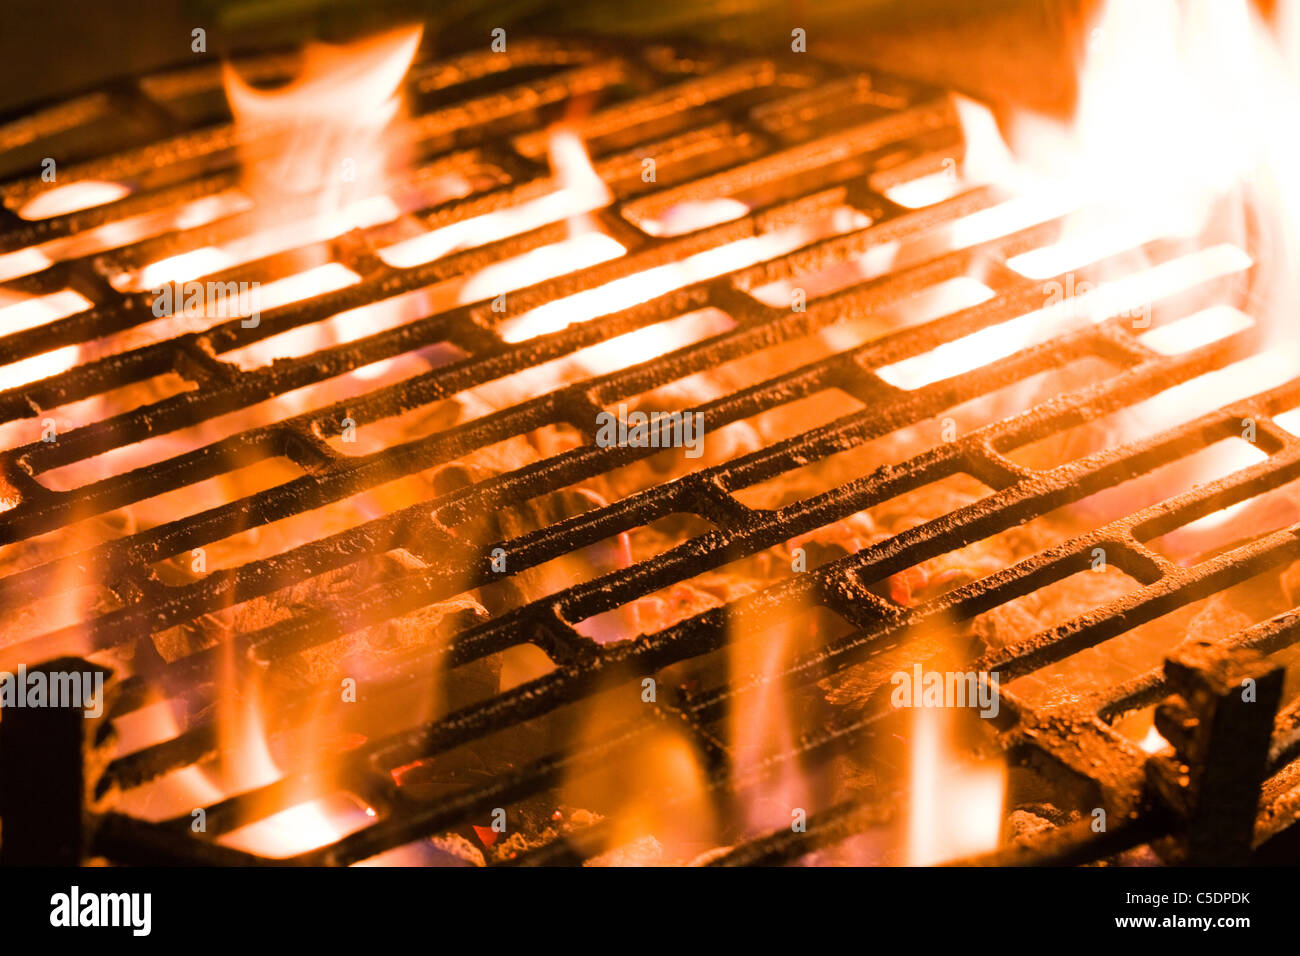 Closeup of charcoal burning under a barbecue grill - Stock Image